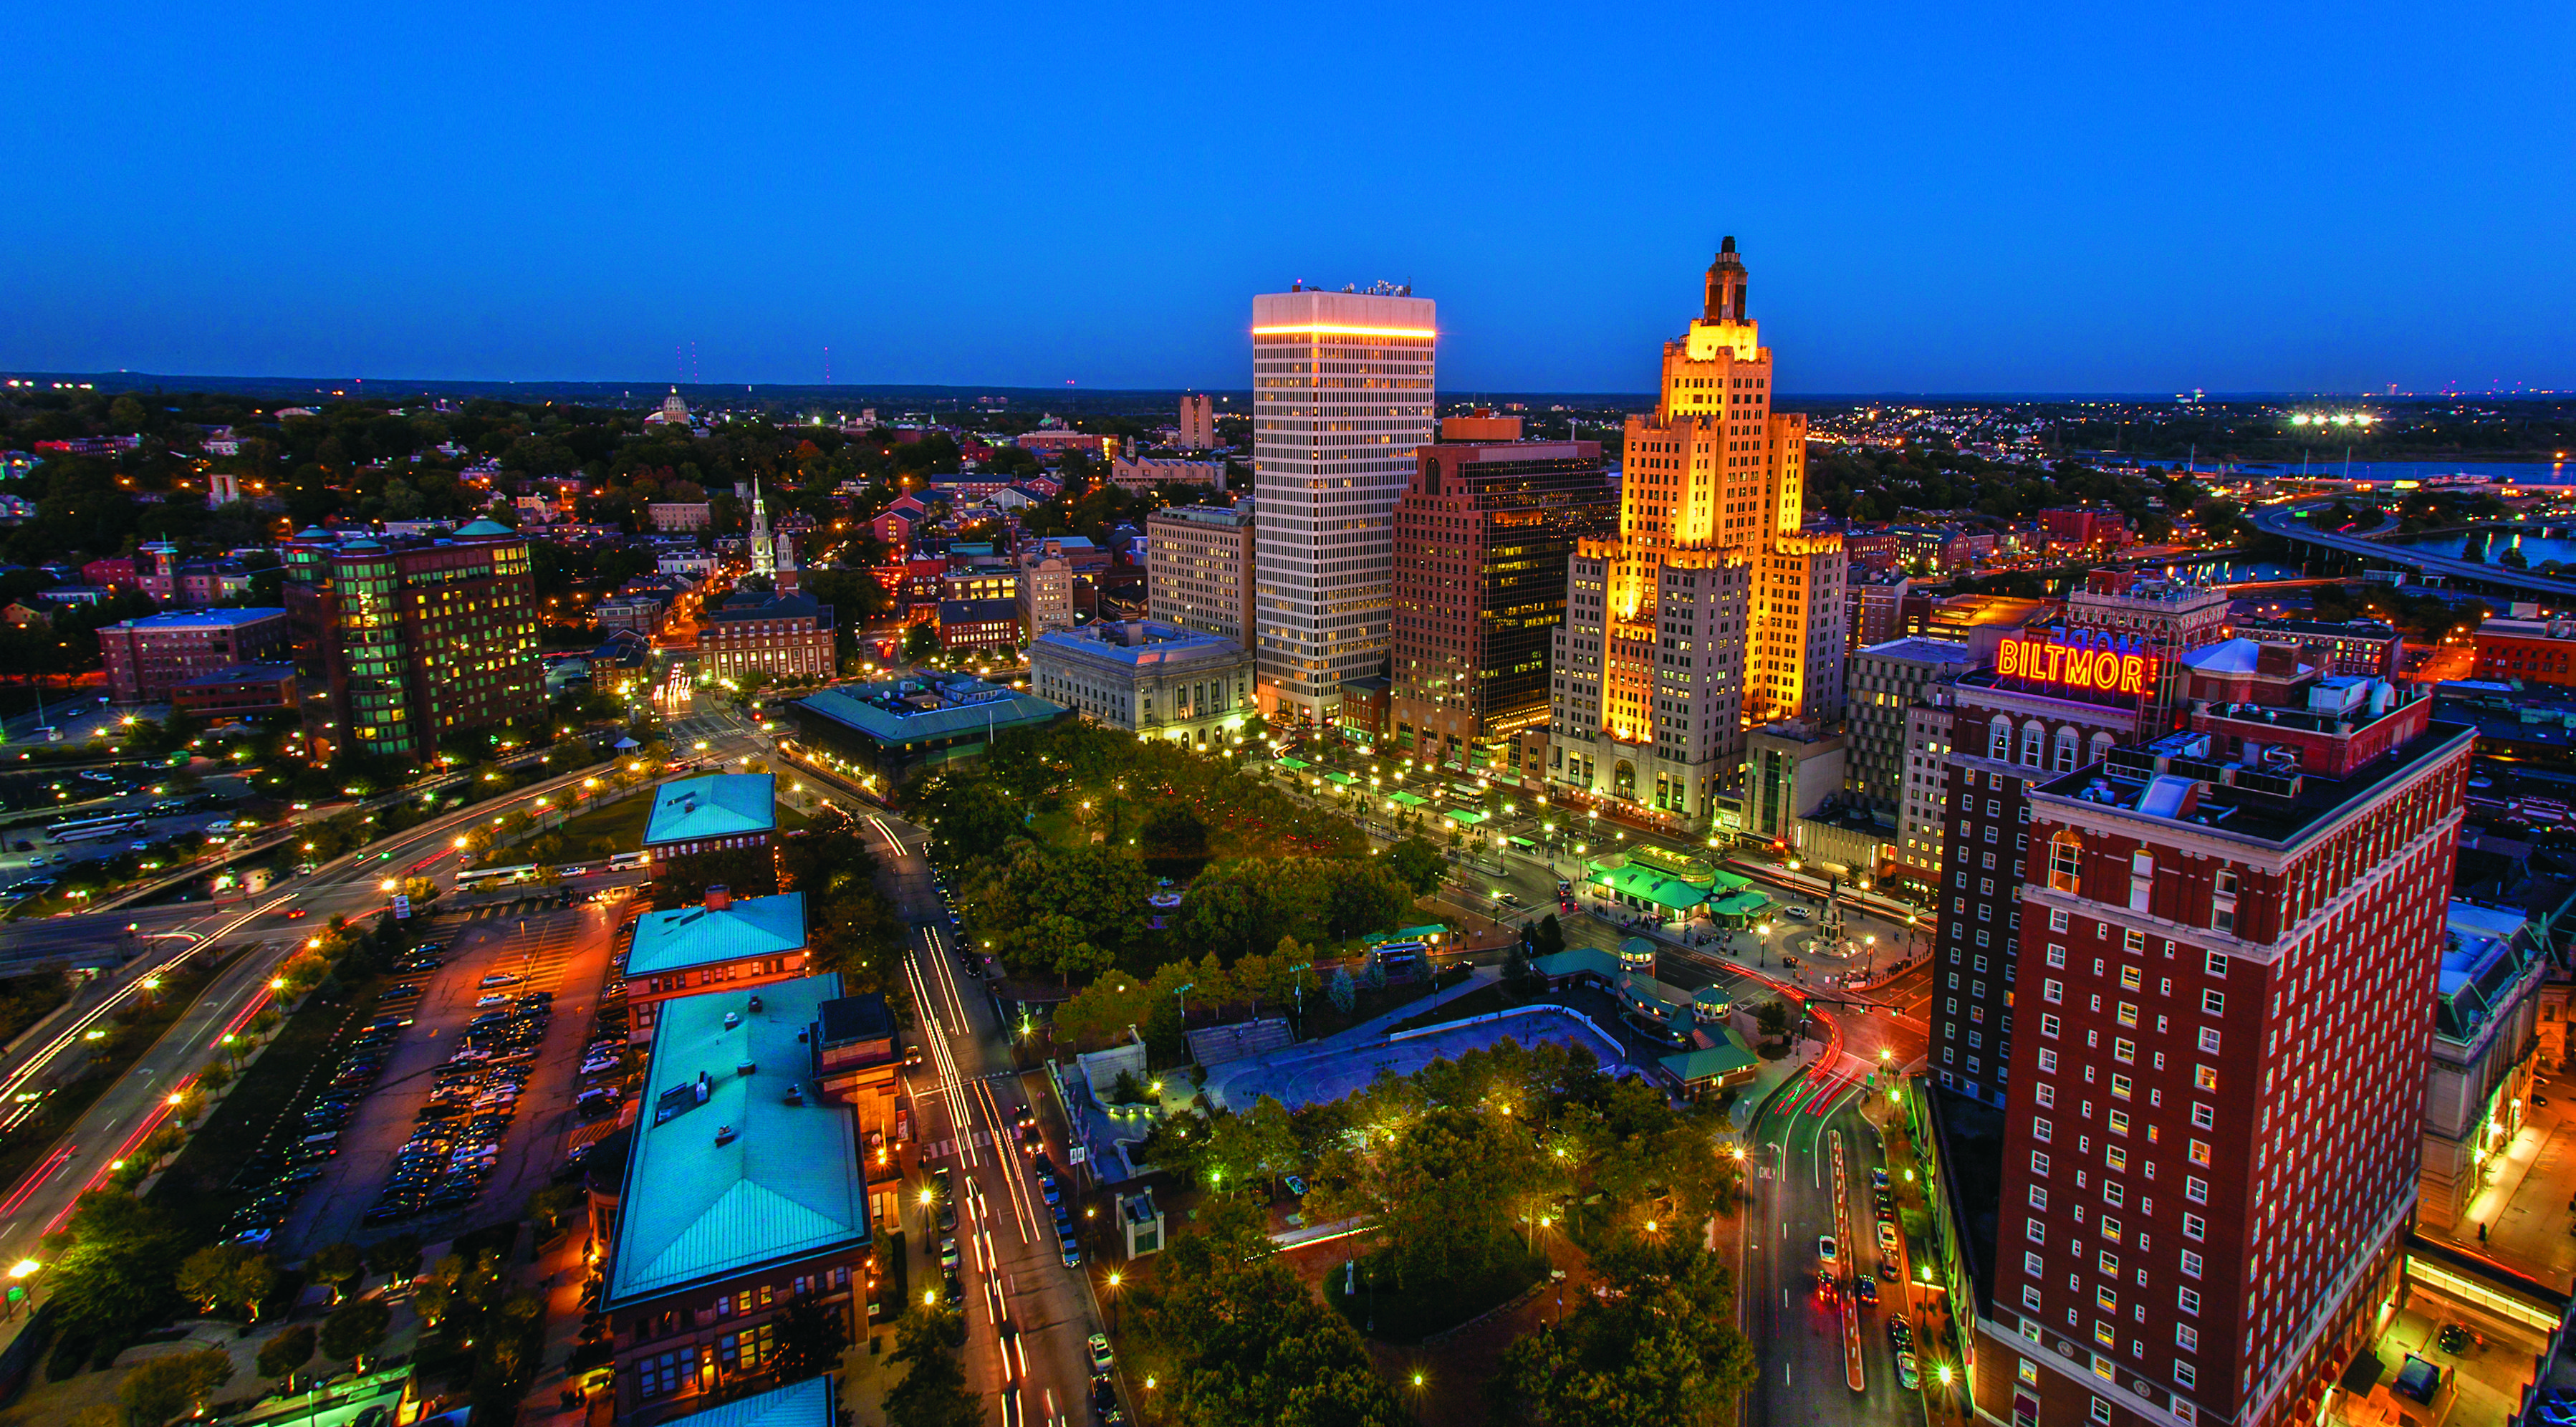 providence rhode island night skyline images   Google Search 3596x1992